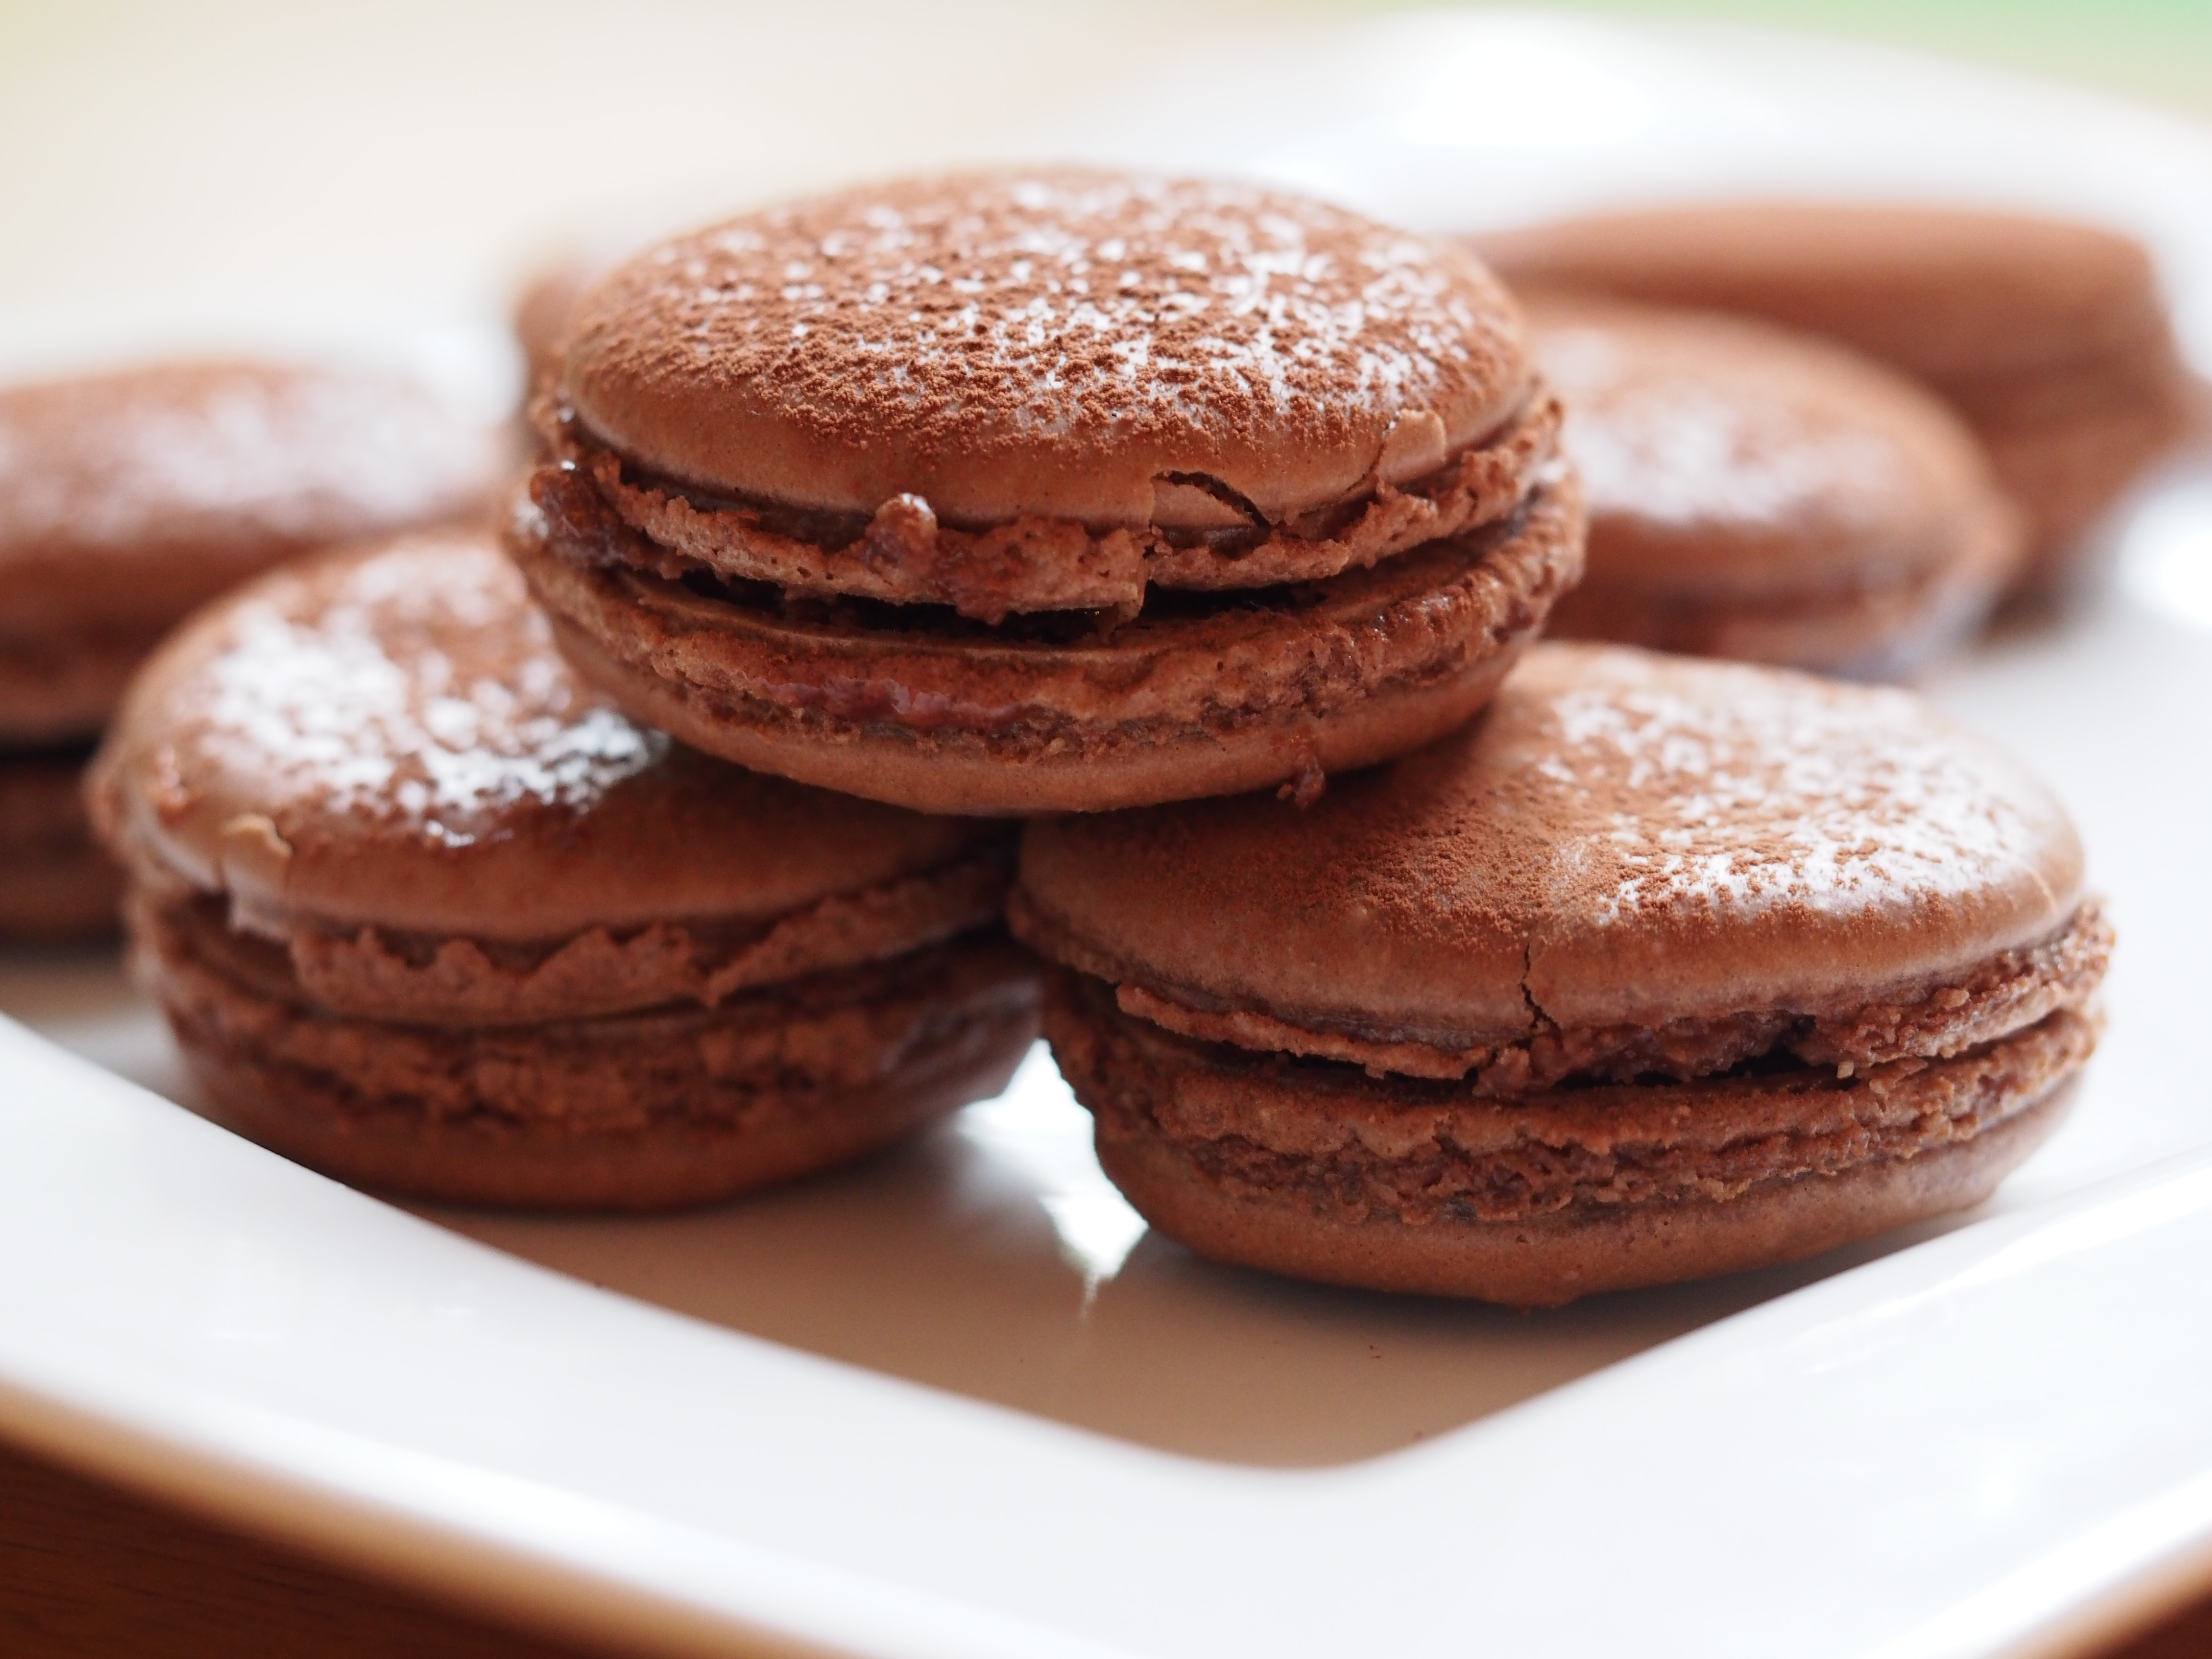 voila beautiful chocolate macarons with raspberry jam filling dusted ...